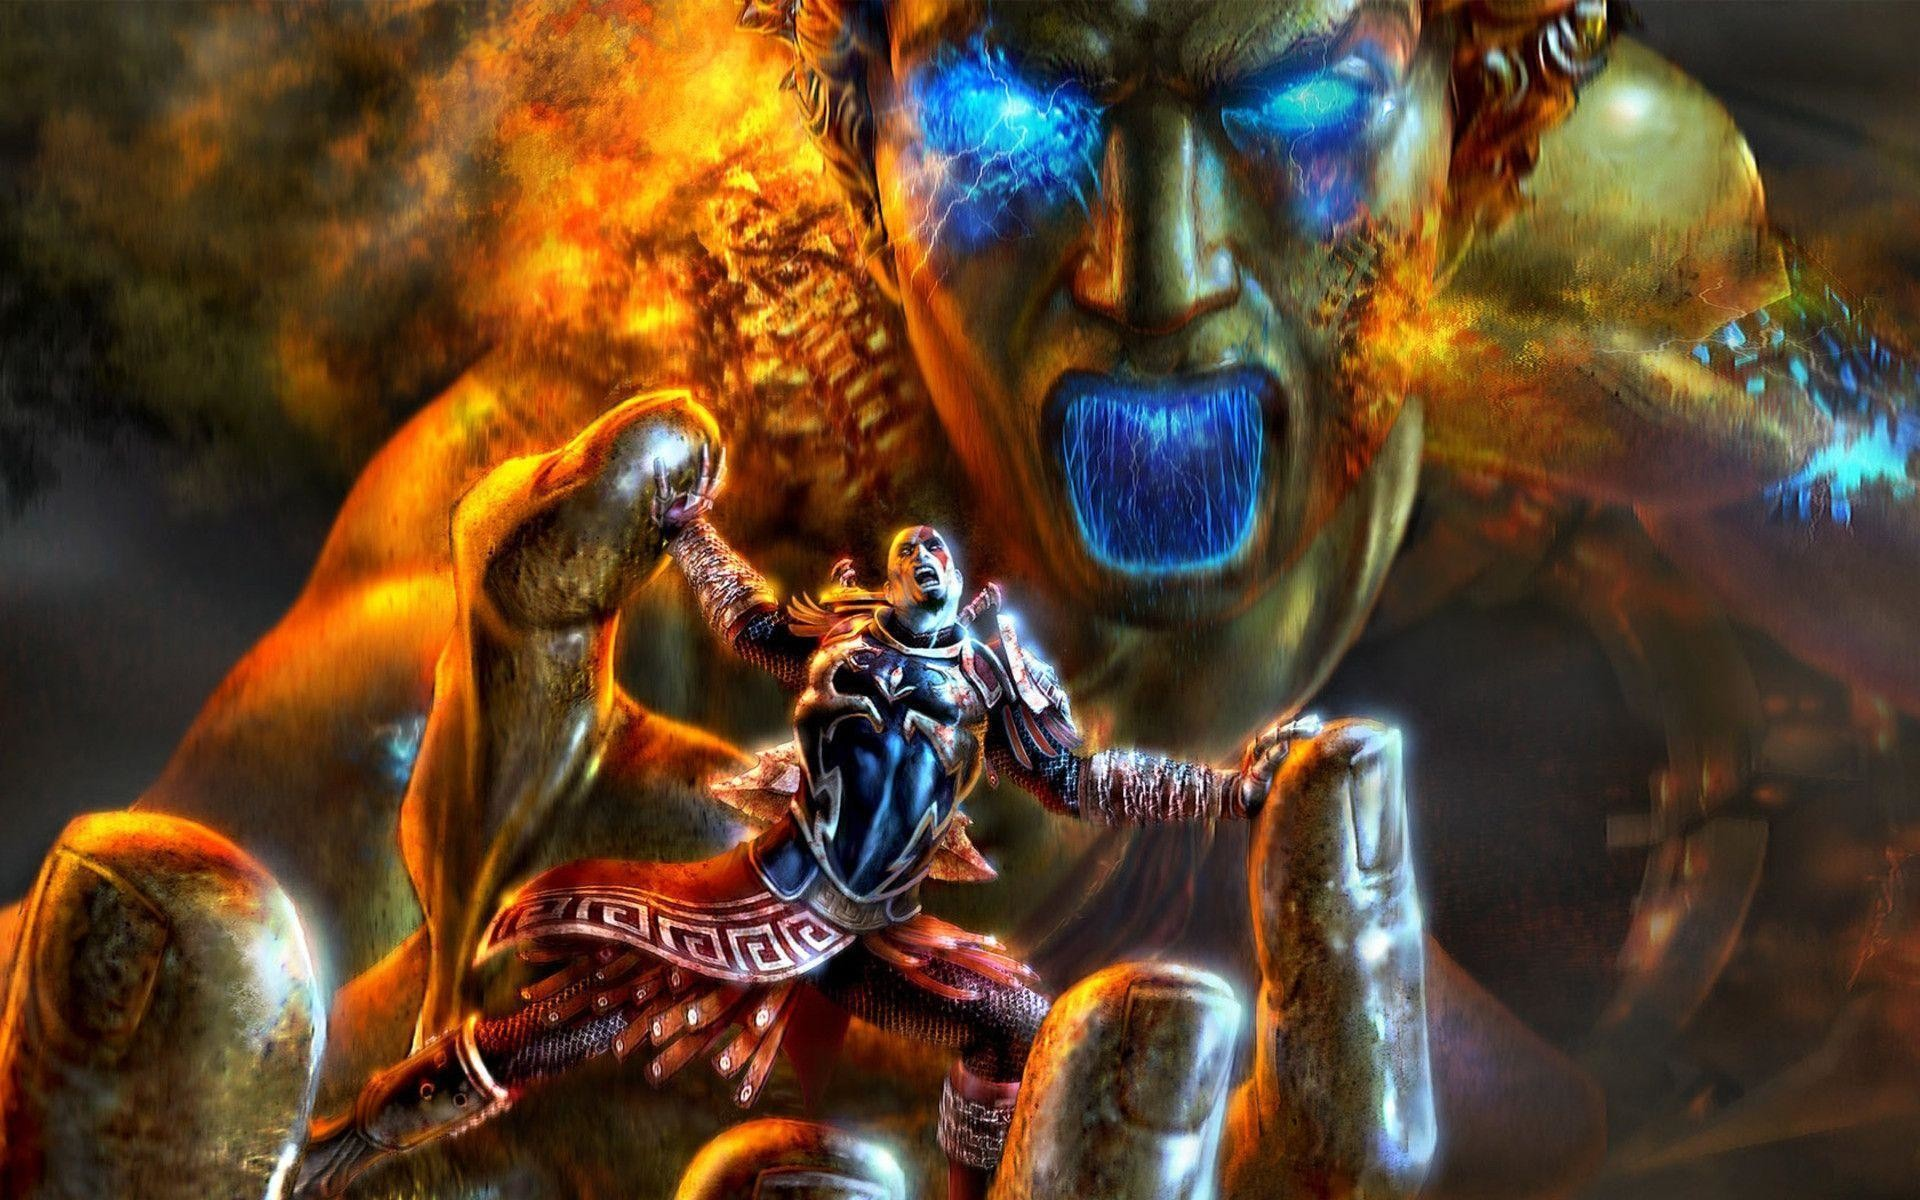 1920x1200 God Of War 2 HD Wallpapers - HD Wallpapers Inn